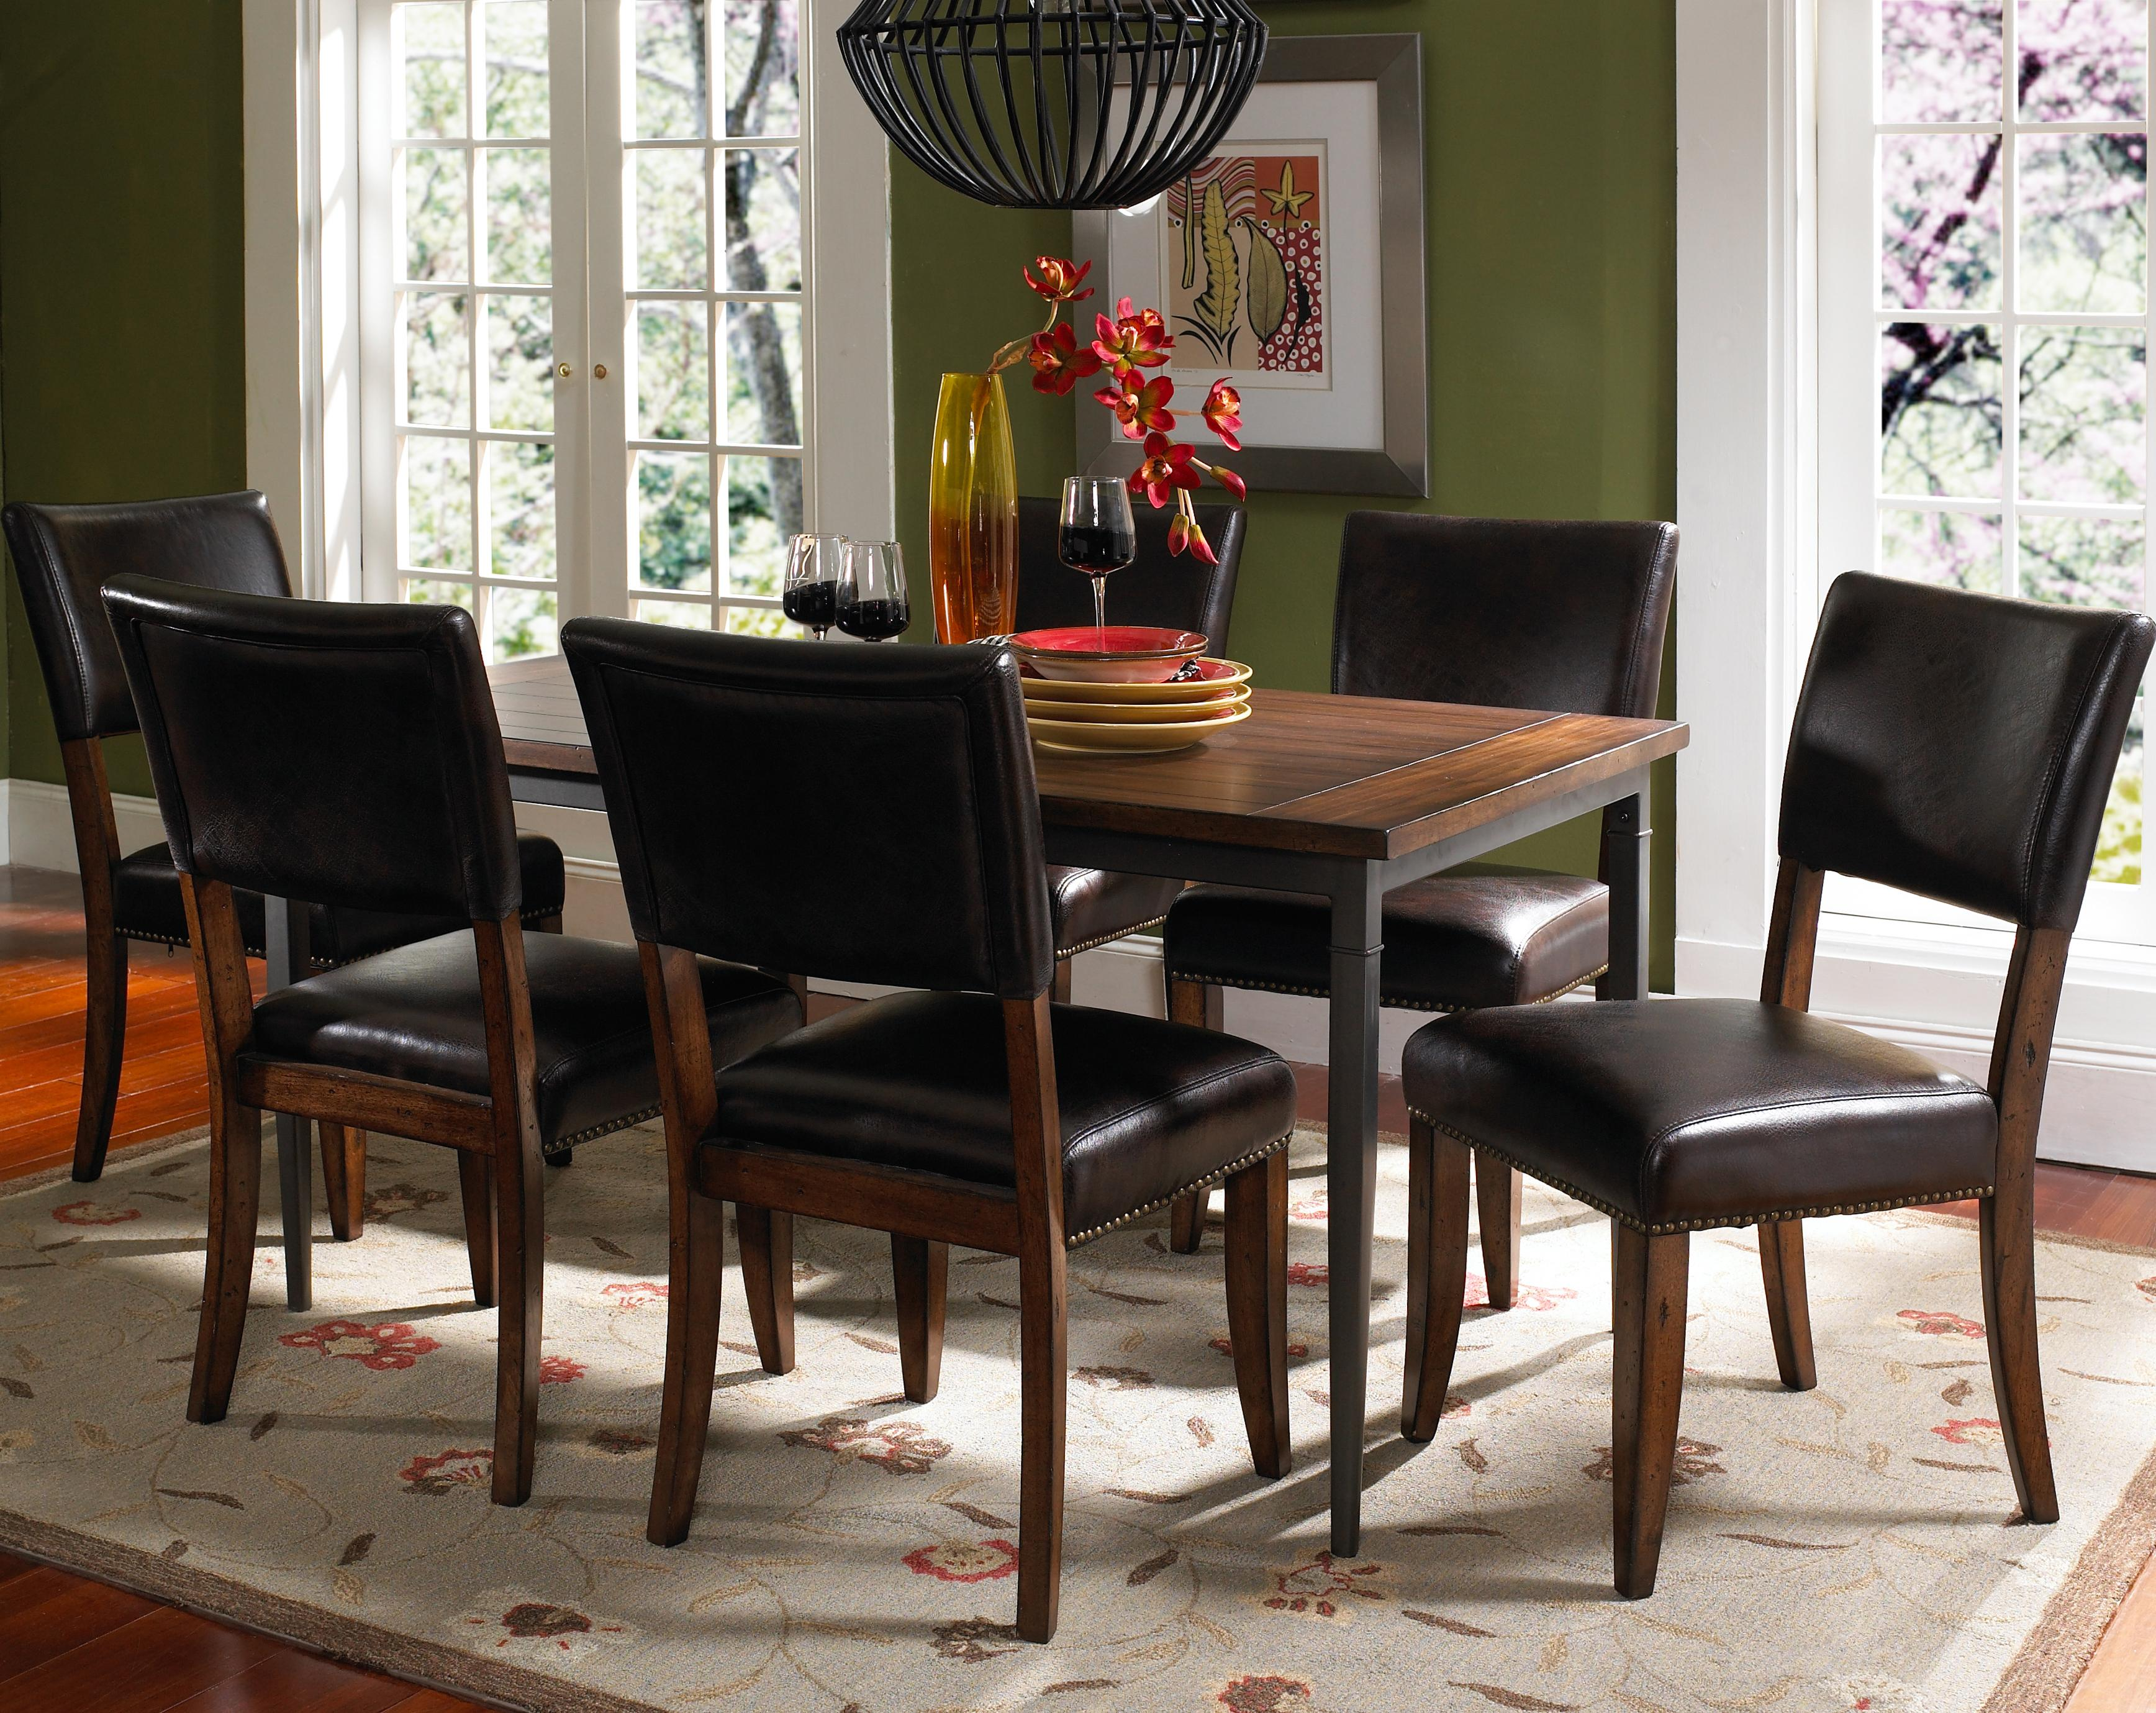 Admirable Cameron 4671 By Hillsdale Esprit Decor Home Furnishings Gmtry Best Dining Table And Chair Ideas Images Gmtryco